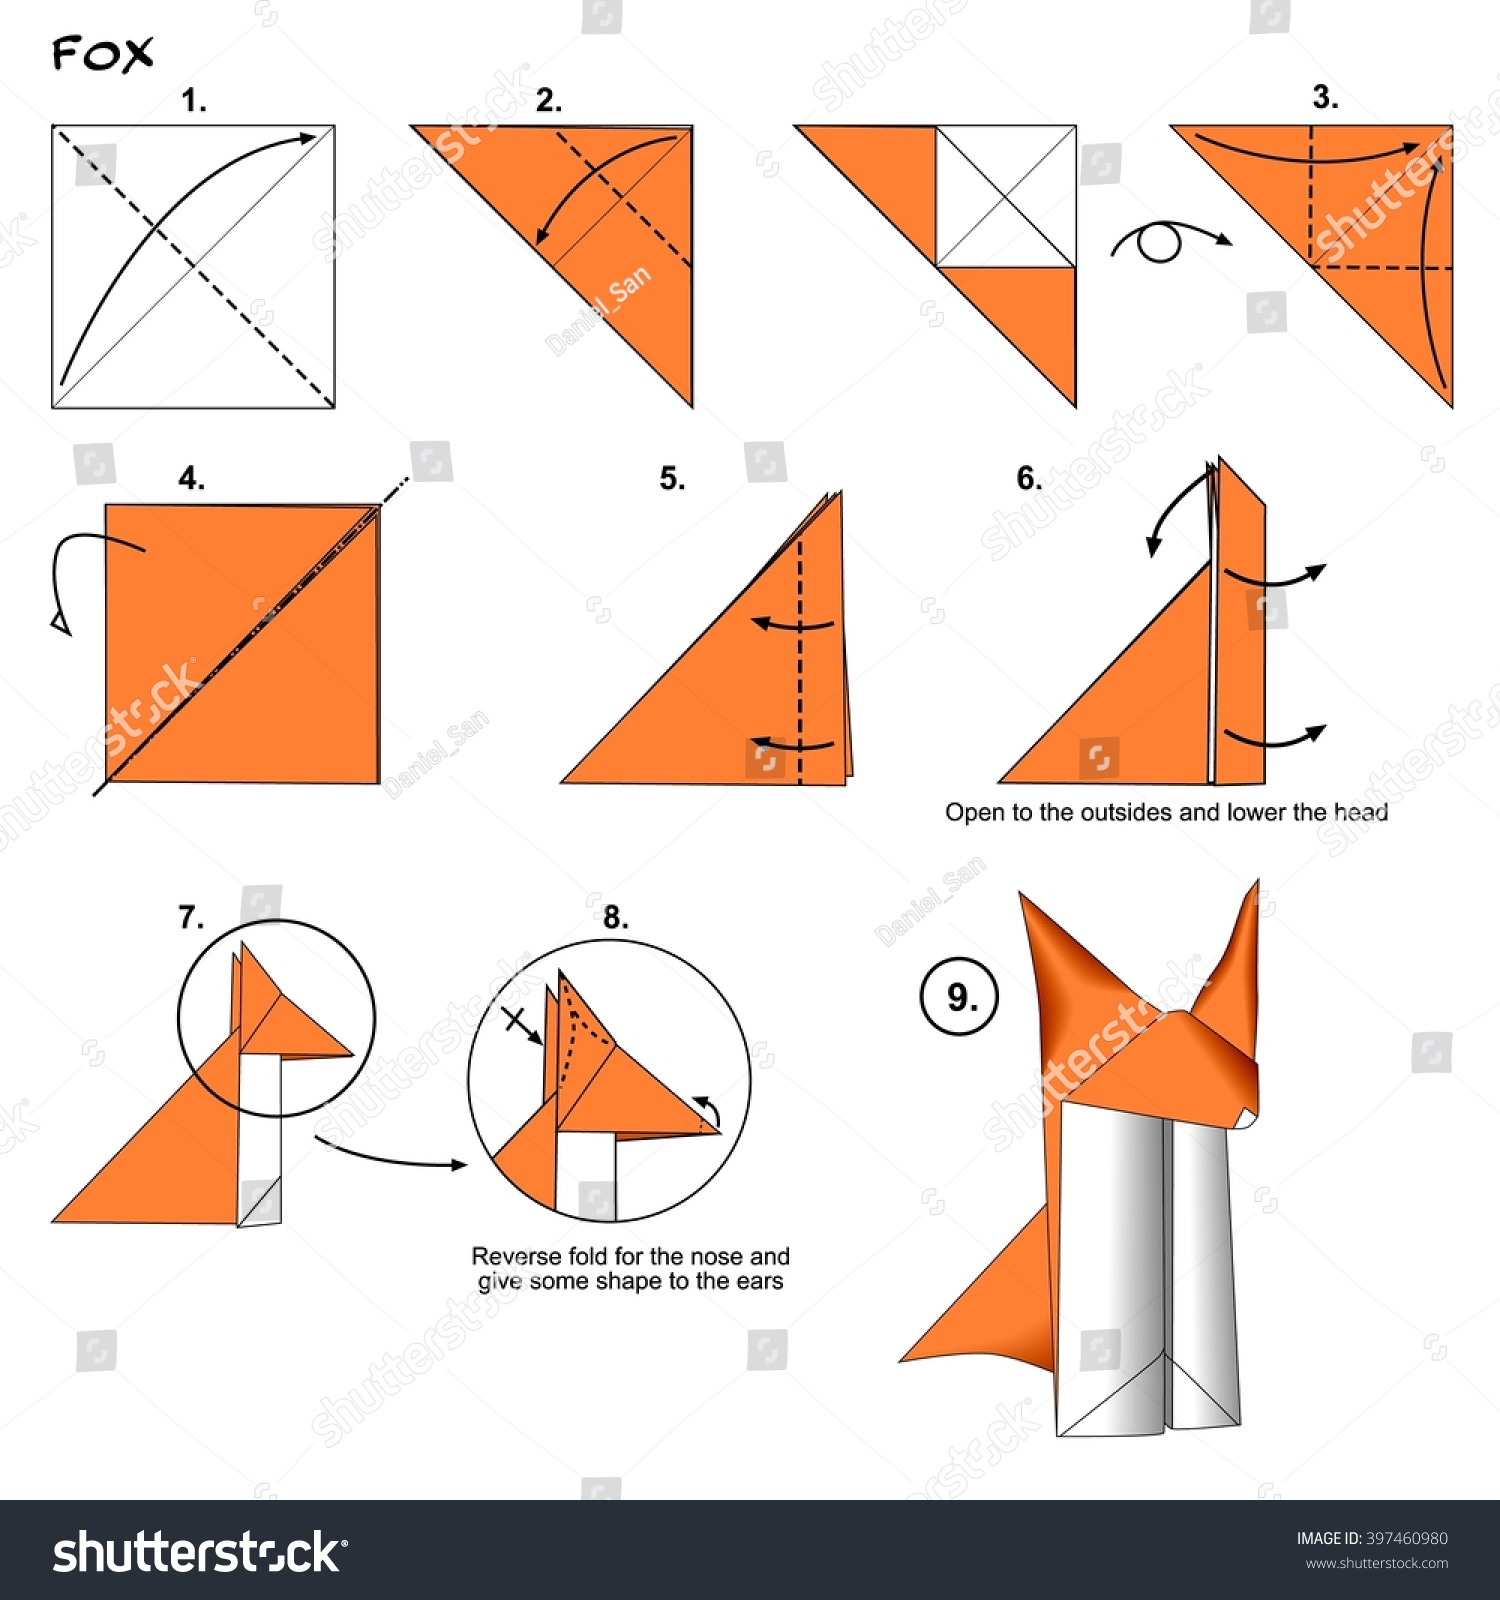 Royalty Free Stock Illustration Of Origami Animal Traditional Fox Diagram Instructions Step By Paper Folding Art